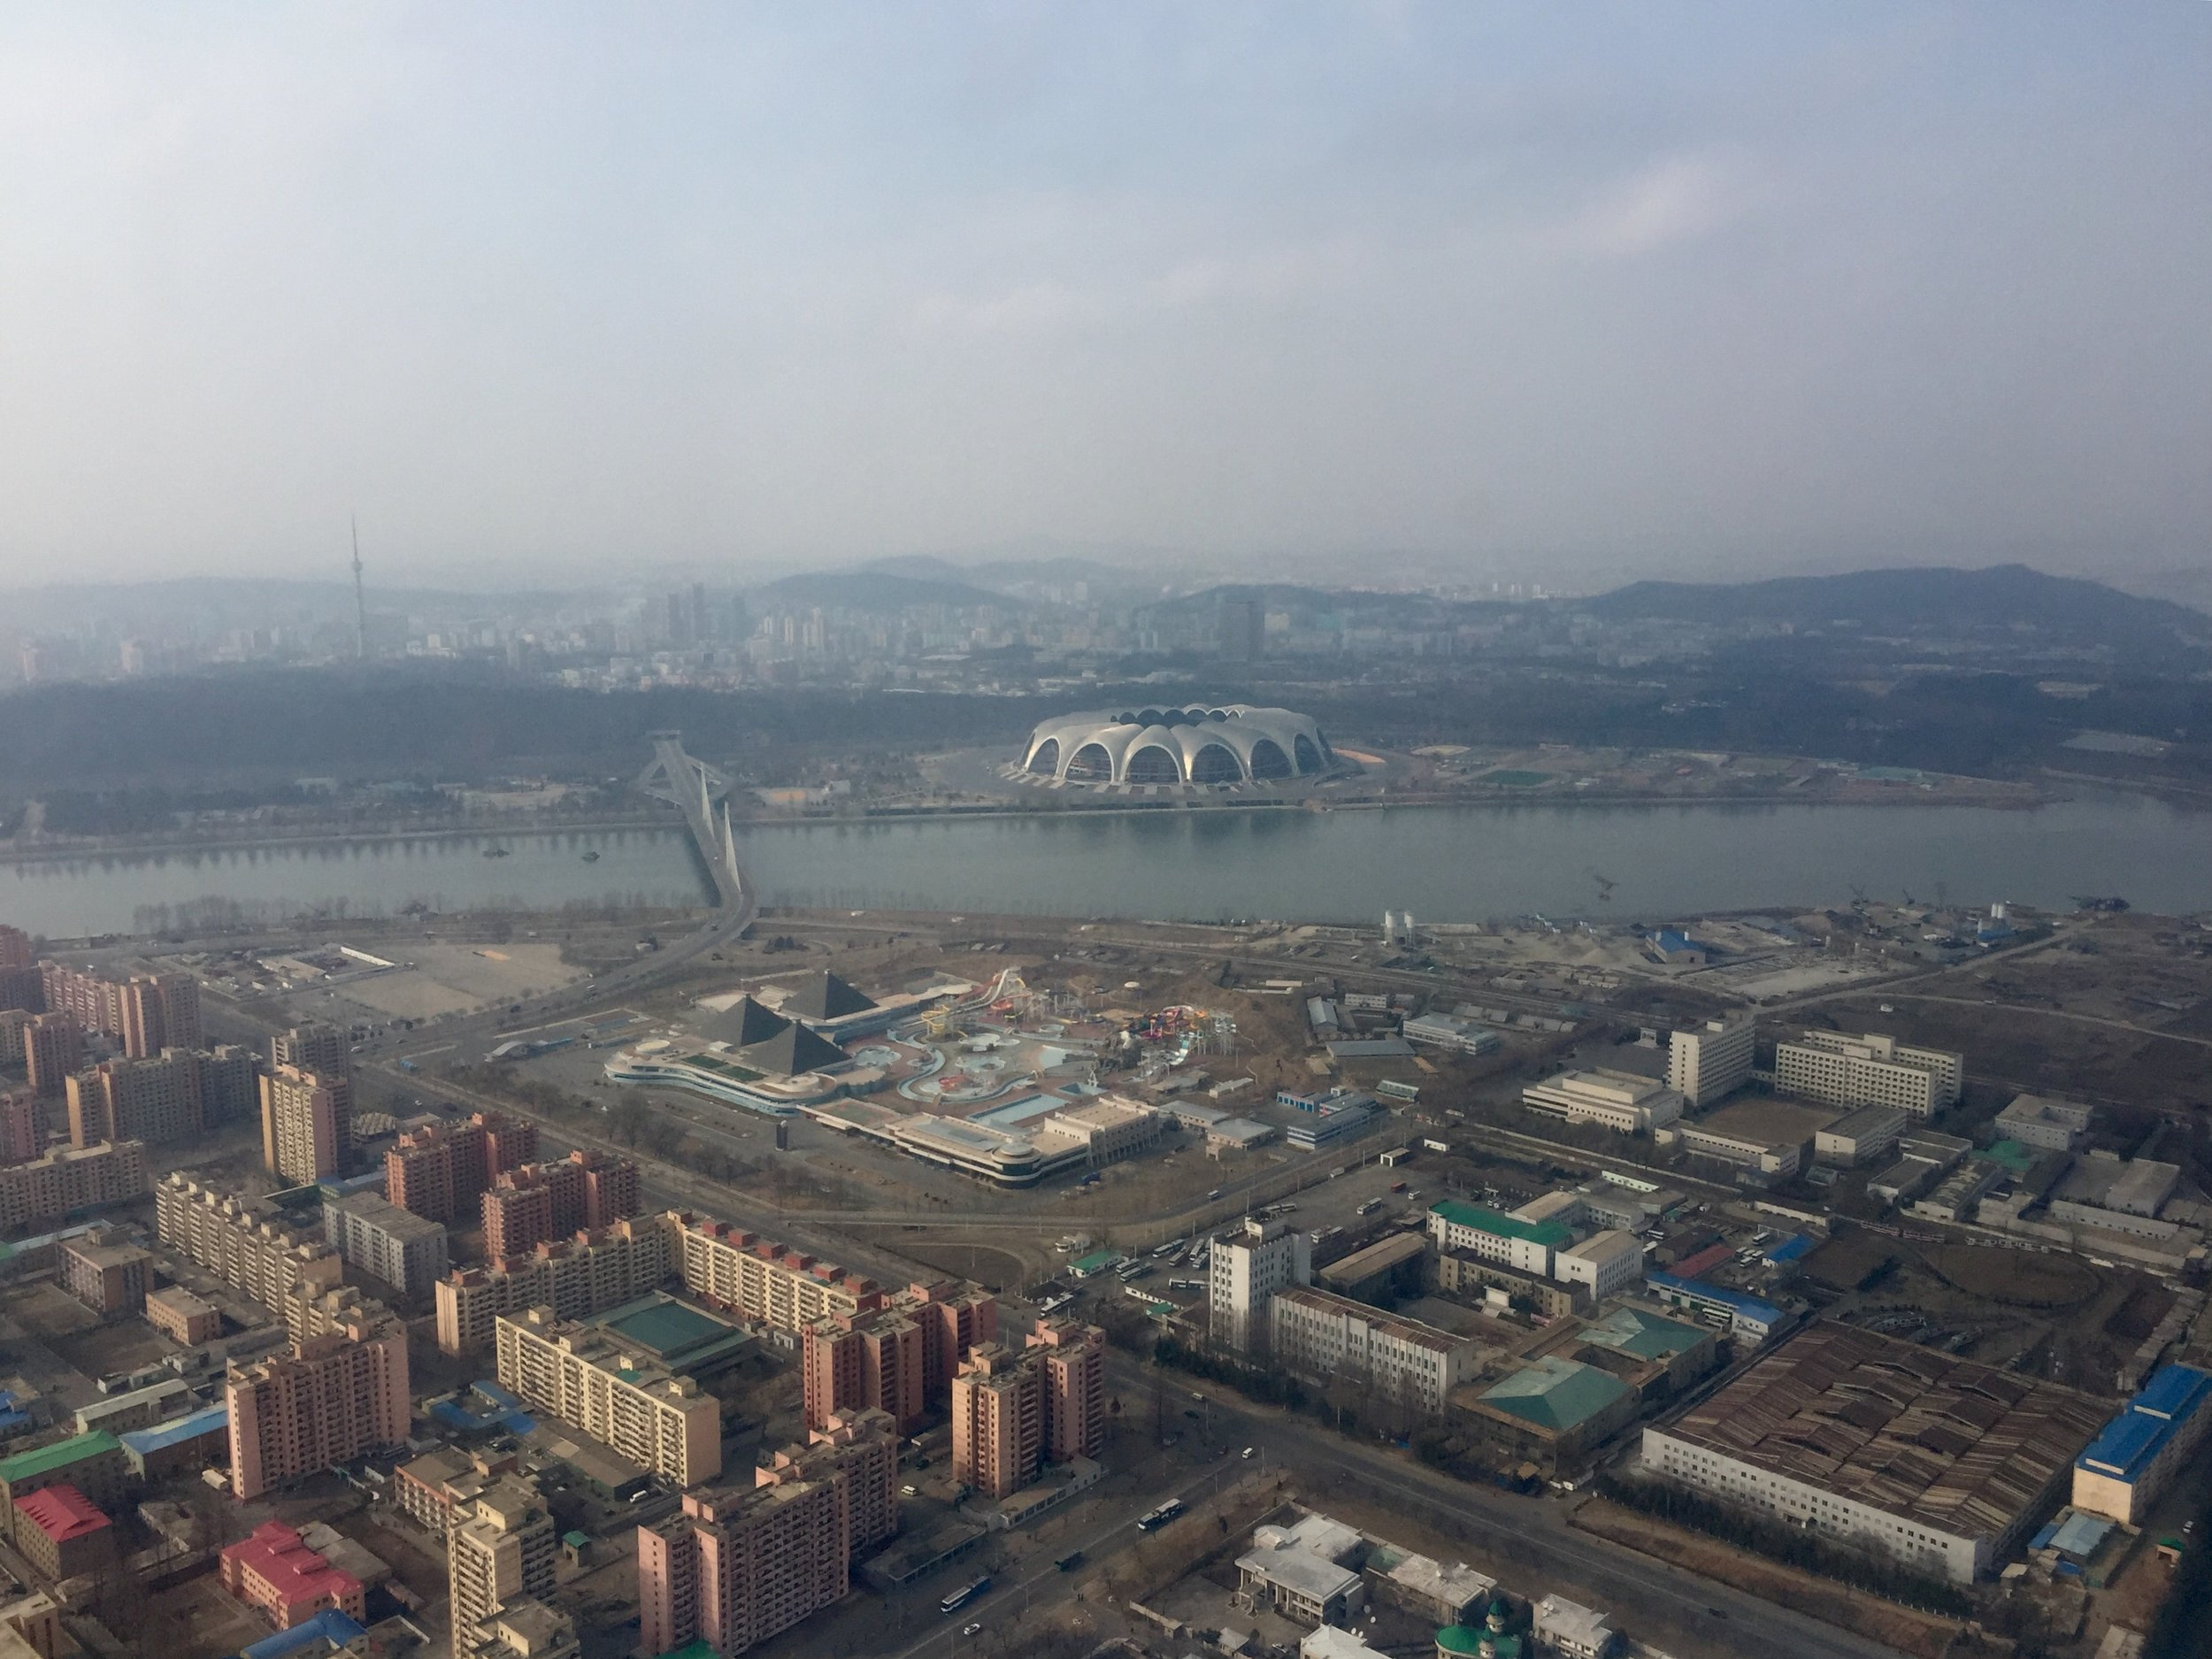 A view of northern Pyongyang as taken from an Air Koryo helicopter. The state-owned Munsu Waterpark can be seen in the foreground, and across the river is Mayday Stadium, the world's largest by capacity with 150,000 seats. (Photo by Ethan Jakob Craft.)